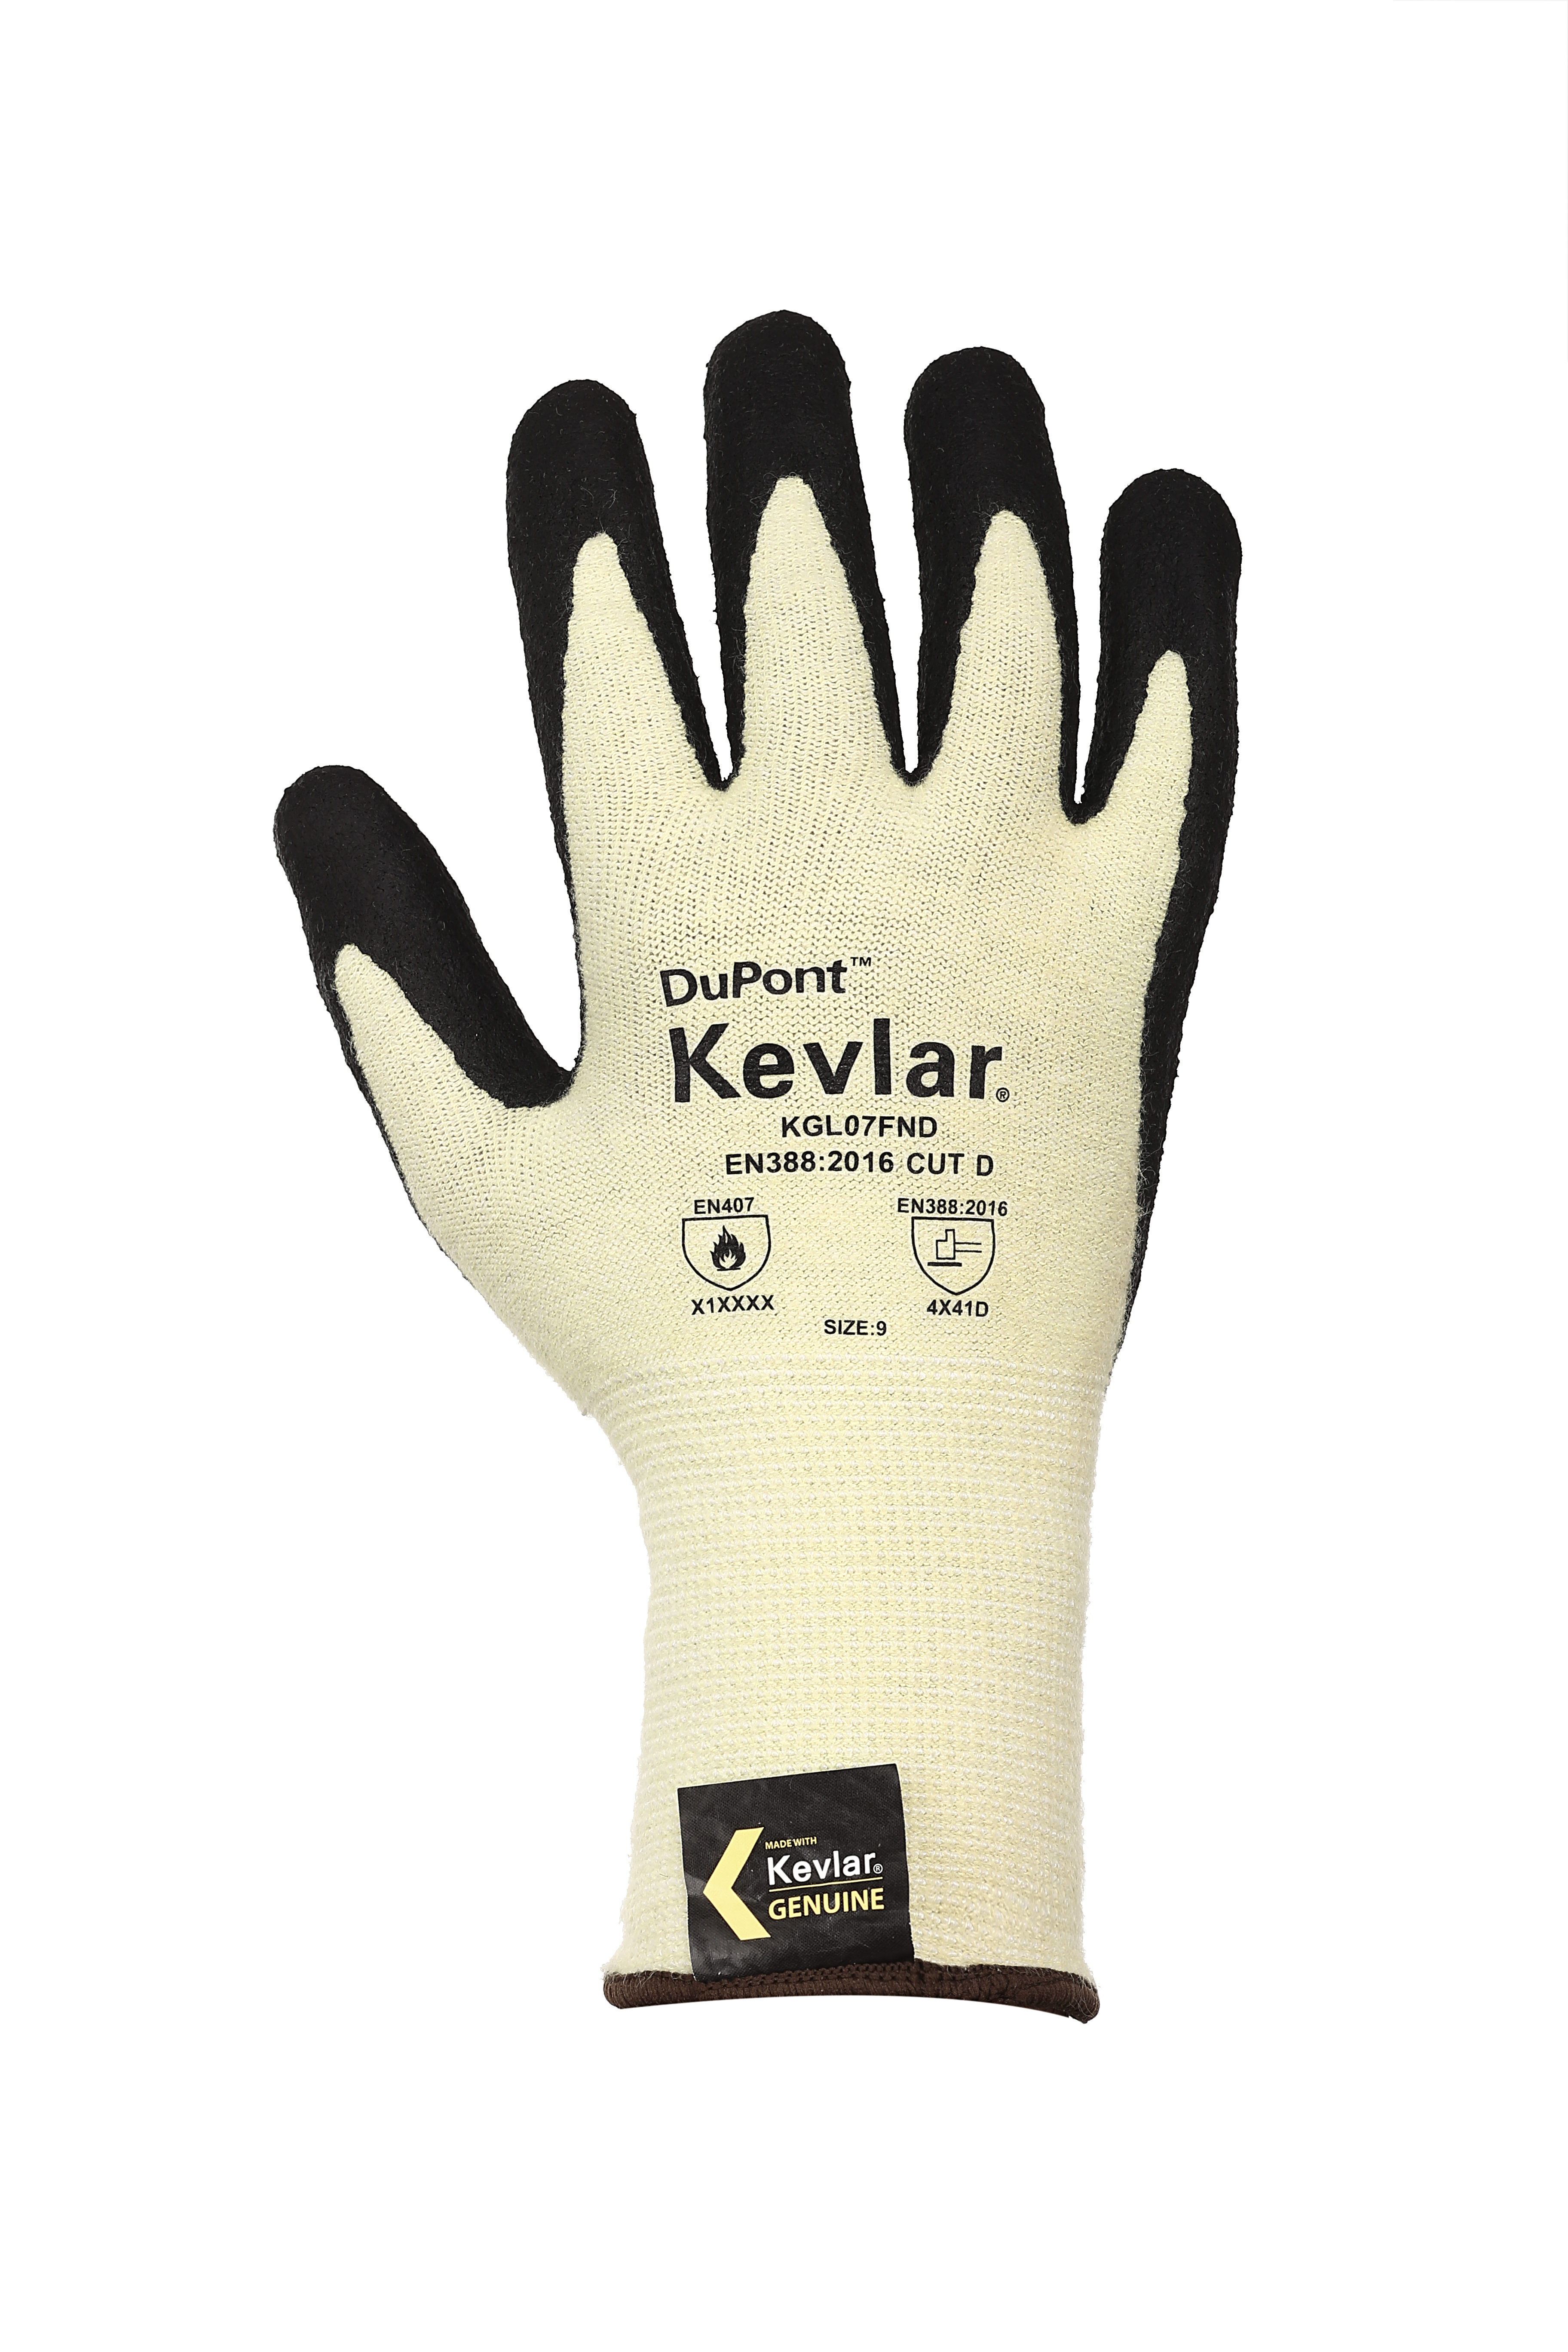 Kevlar® 660 FN with Stretch Armor Technology